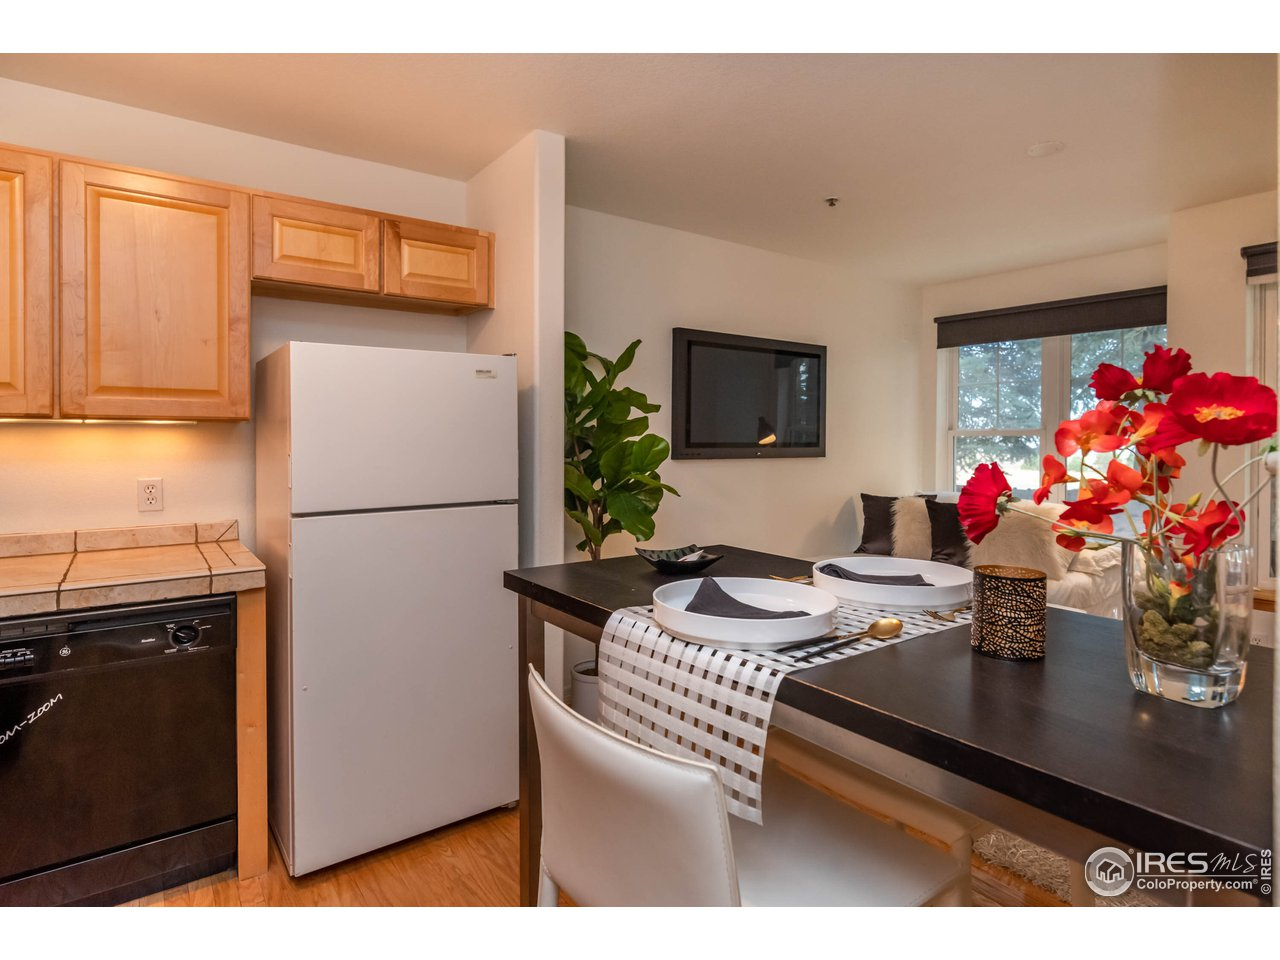 Kitchen w/ Full Size Appliances and Maple Cabinets